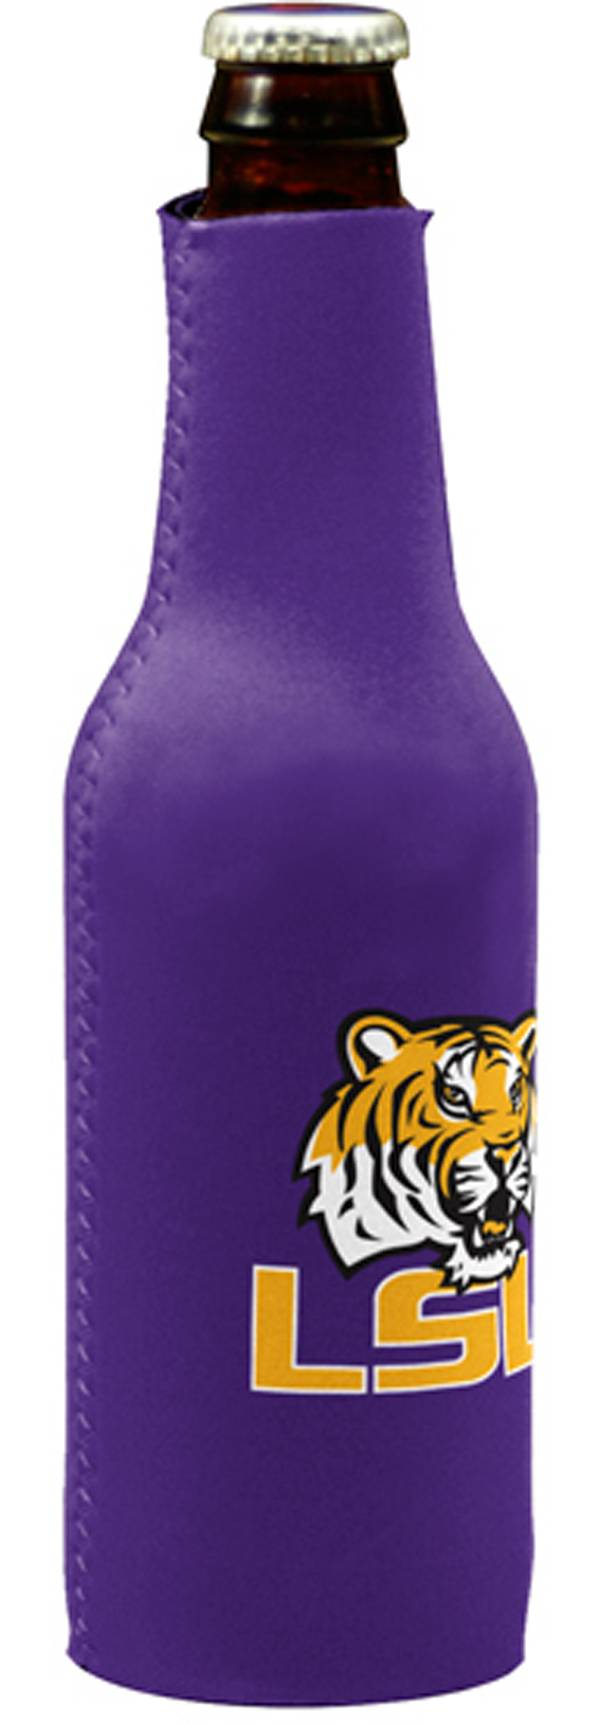 LSU Tigers Bottle Koozie product image